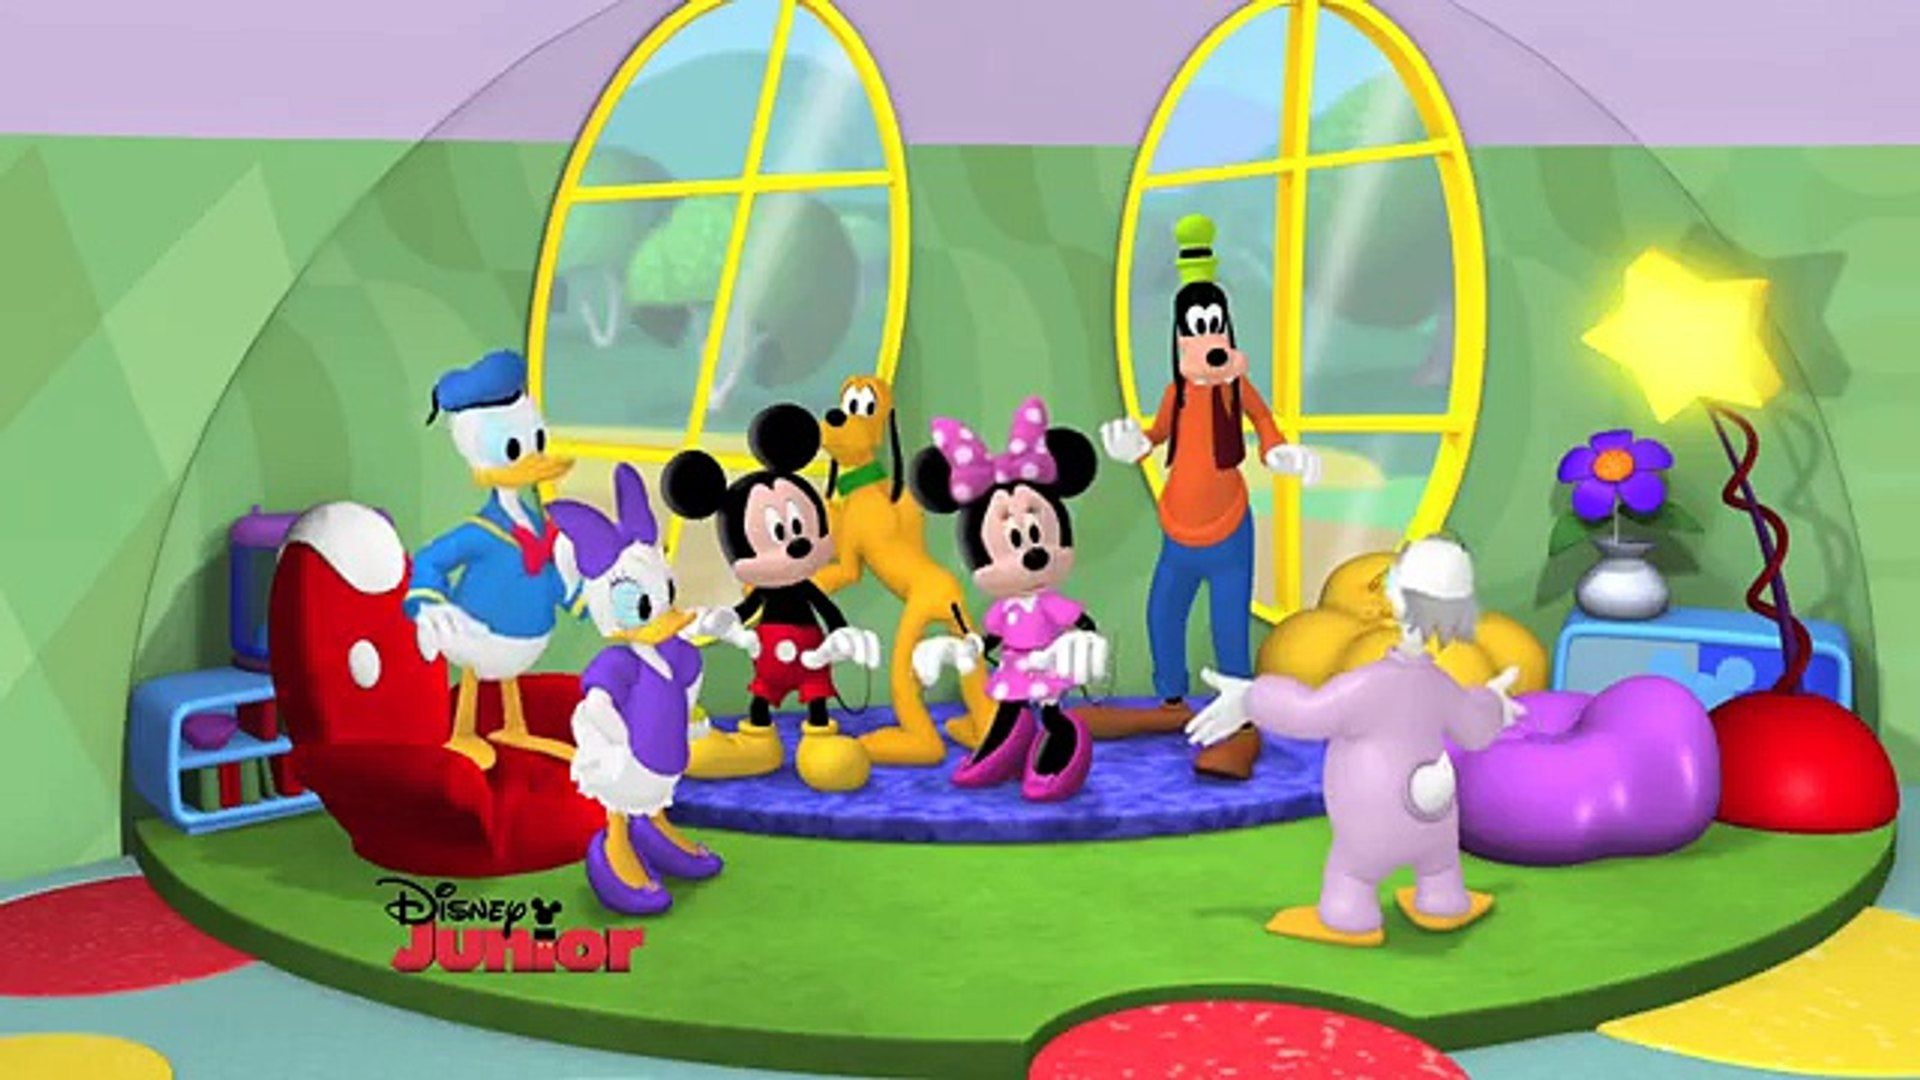 Mickey Mouse Clubhouse Birthday Clipart hd desktop wallpaper